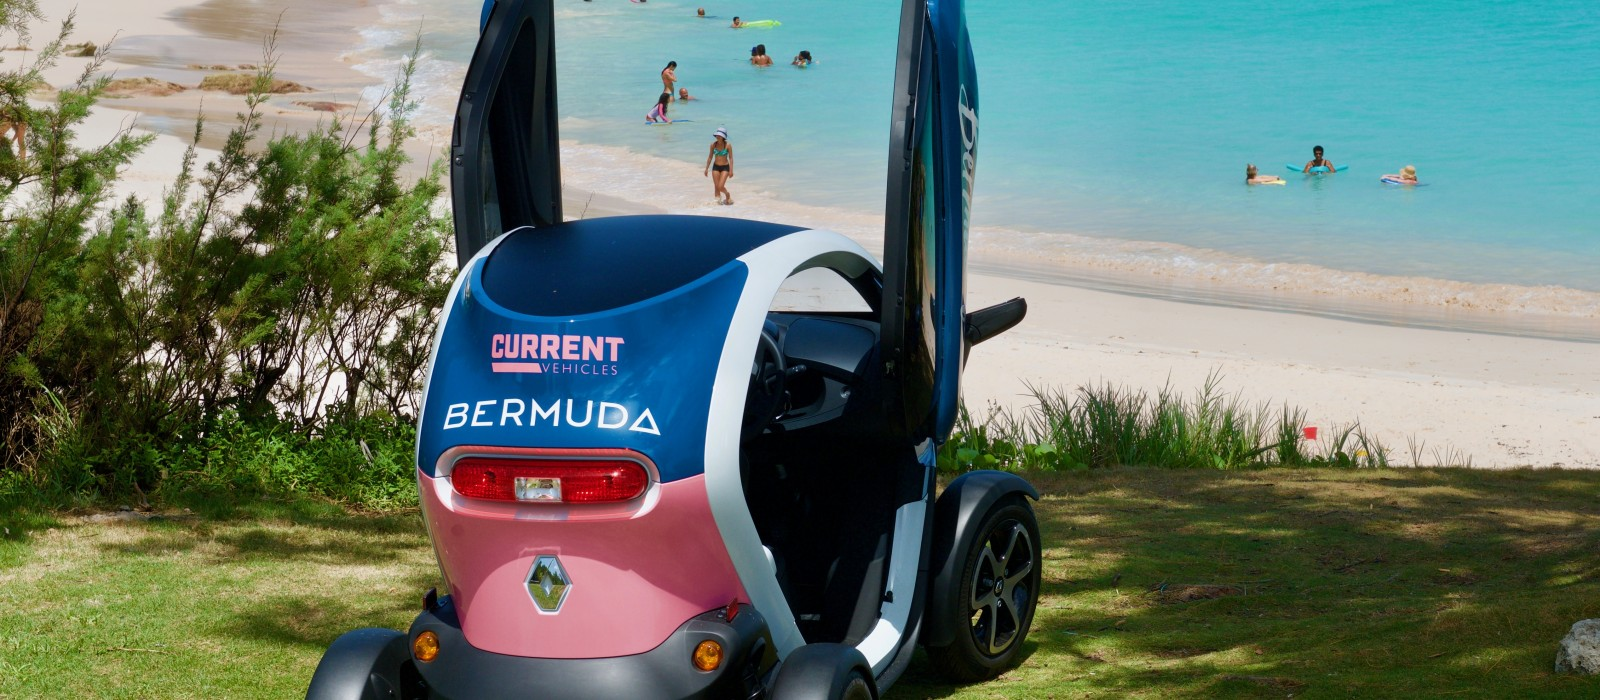 Twizy at John Smith's Bay Bermuda beach